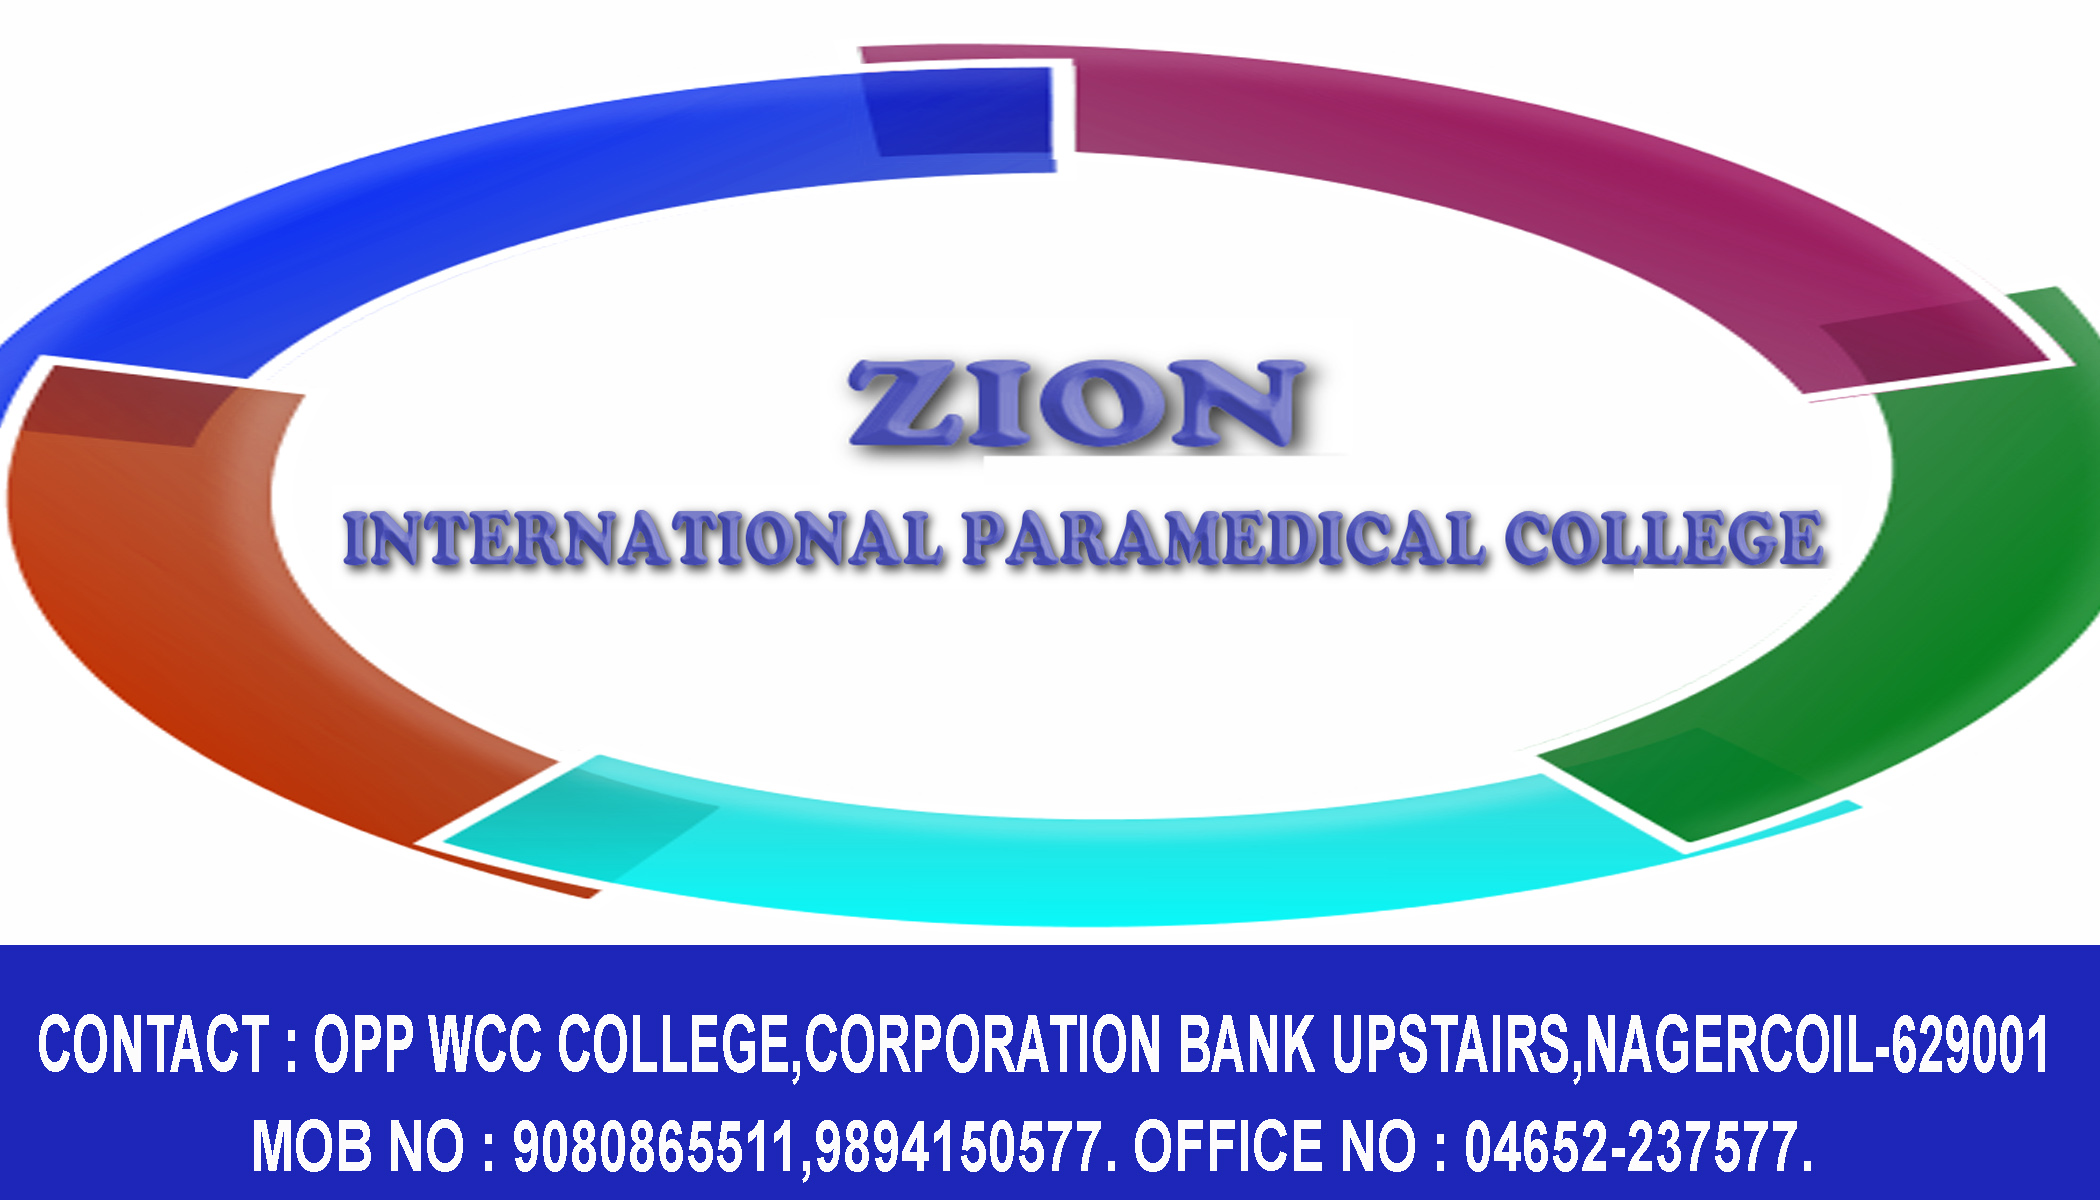 ZION INTERNATIONAL PARAMEDICAL COLLEGE